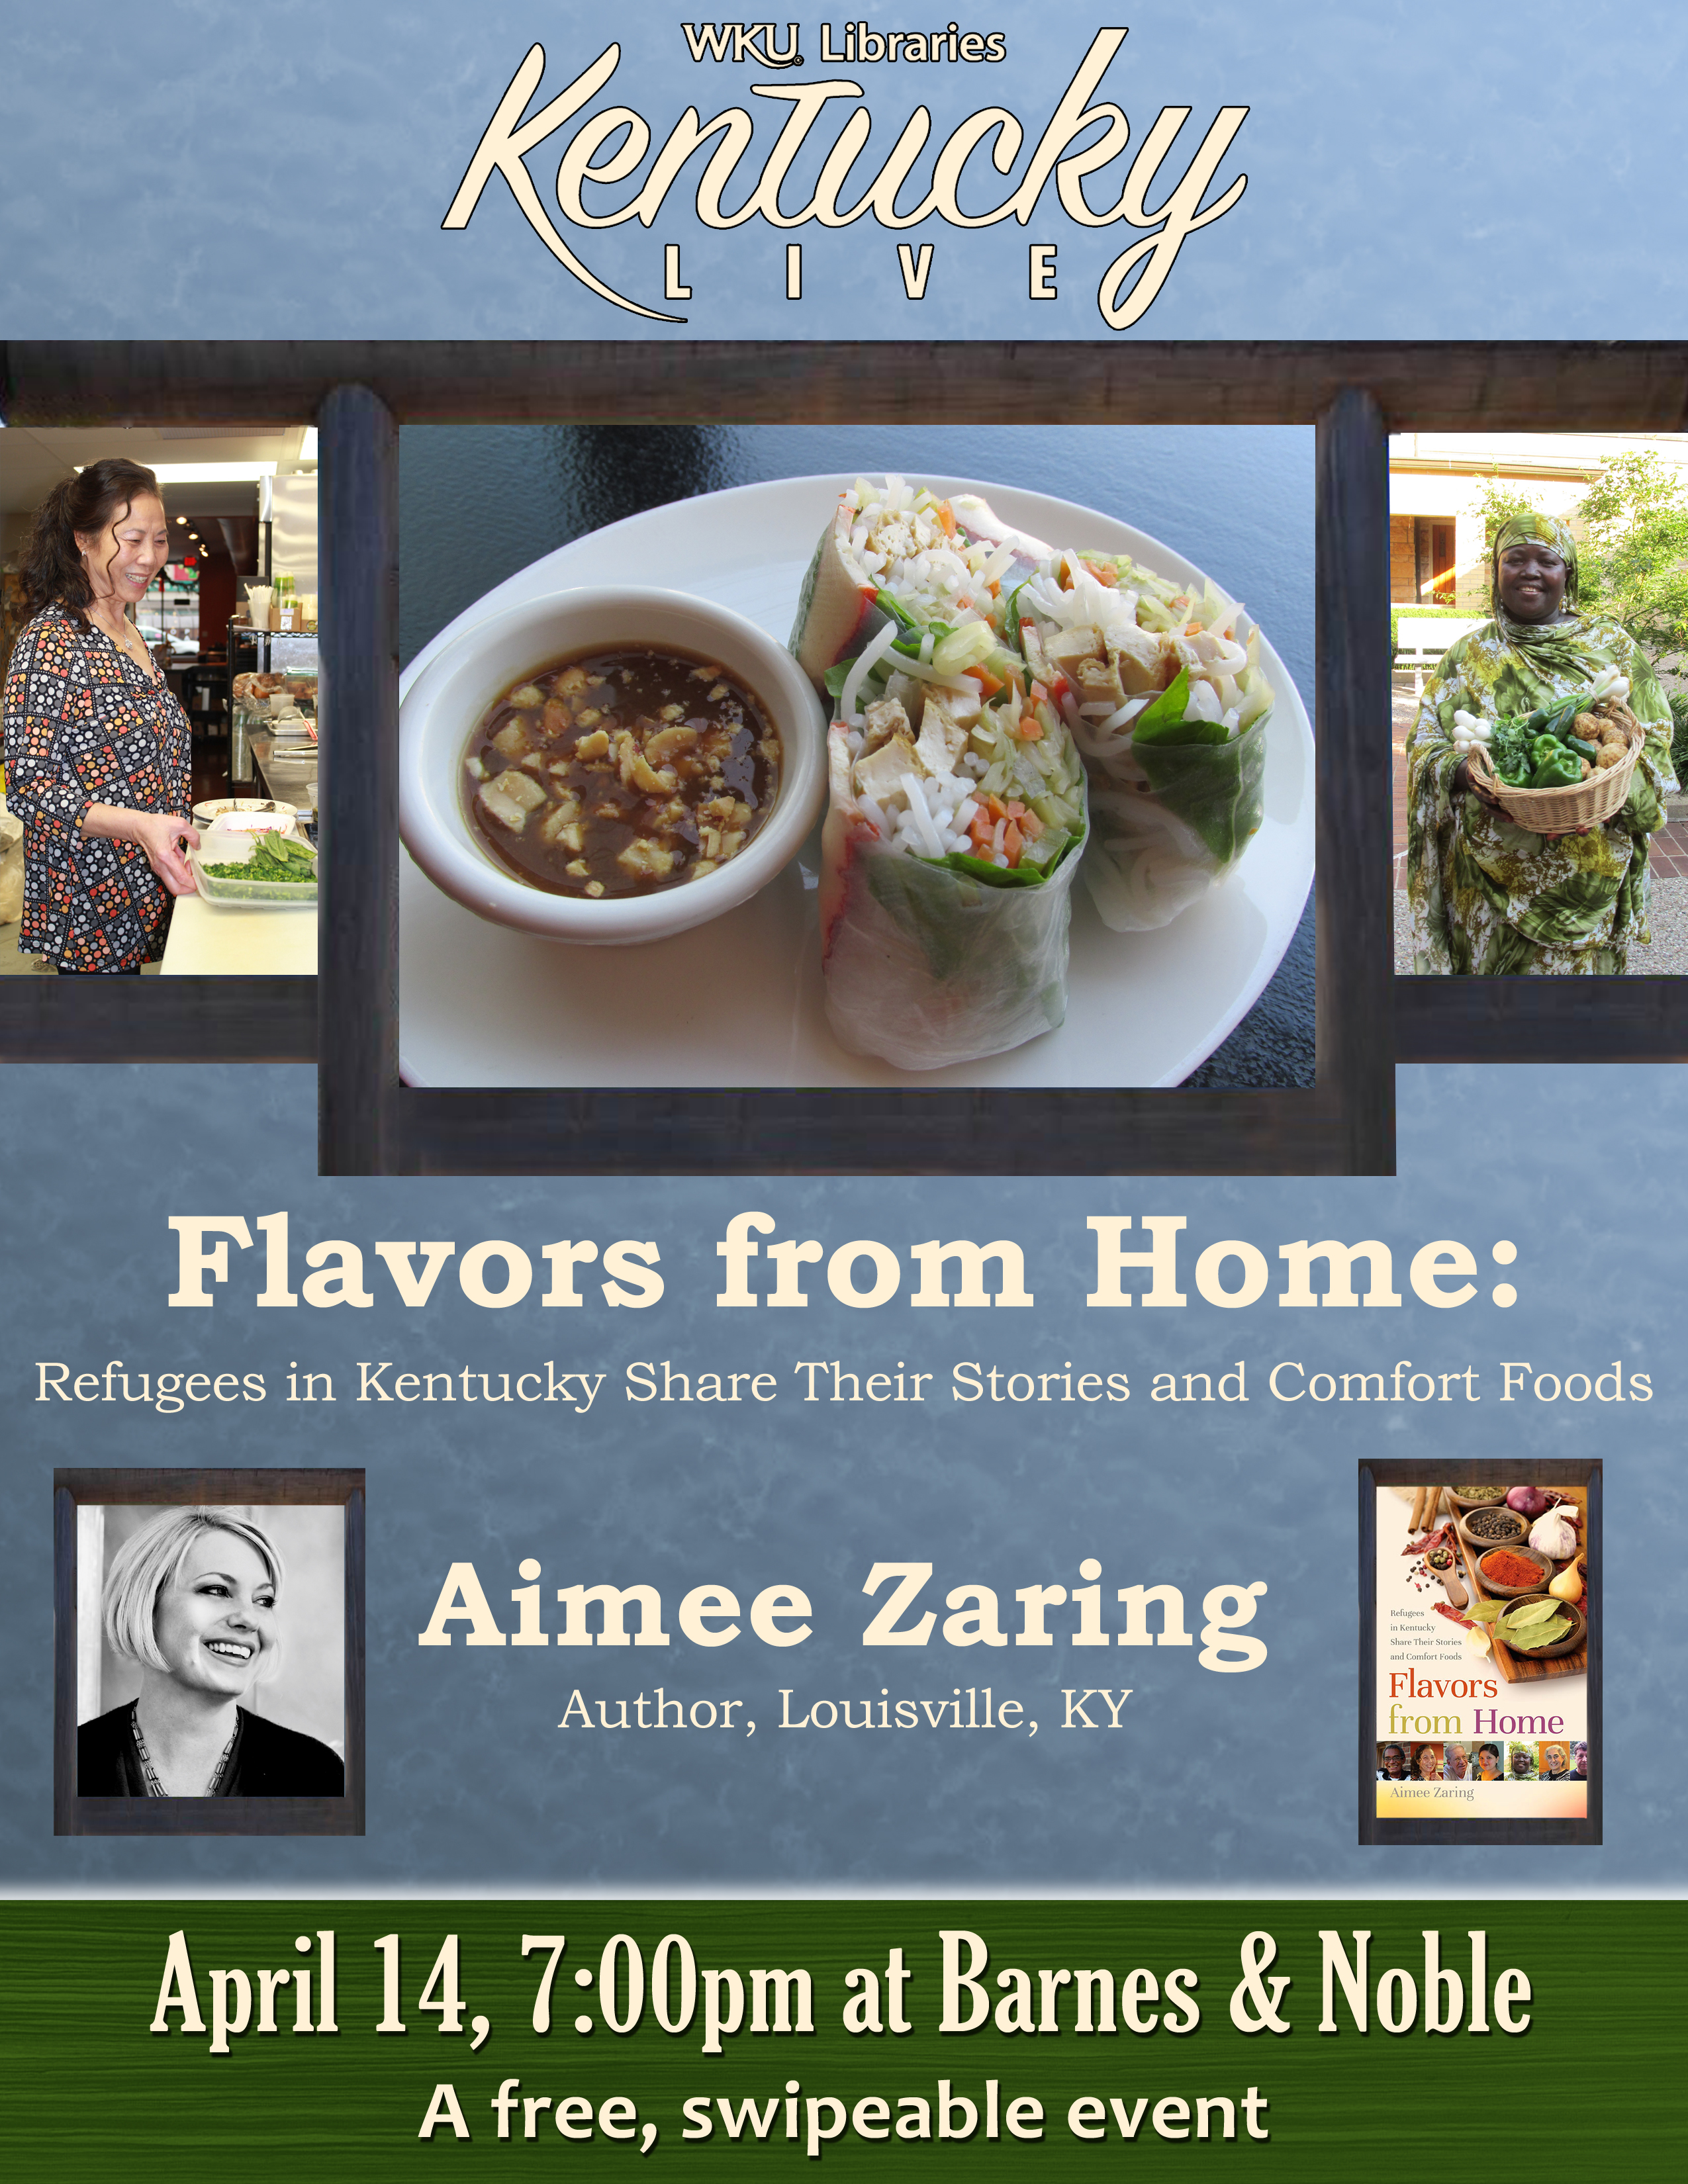 """Aimee Zaring """"Flavors from Home"""" event Flyer"""